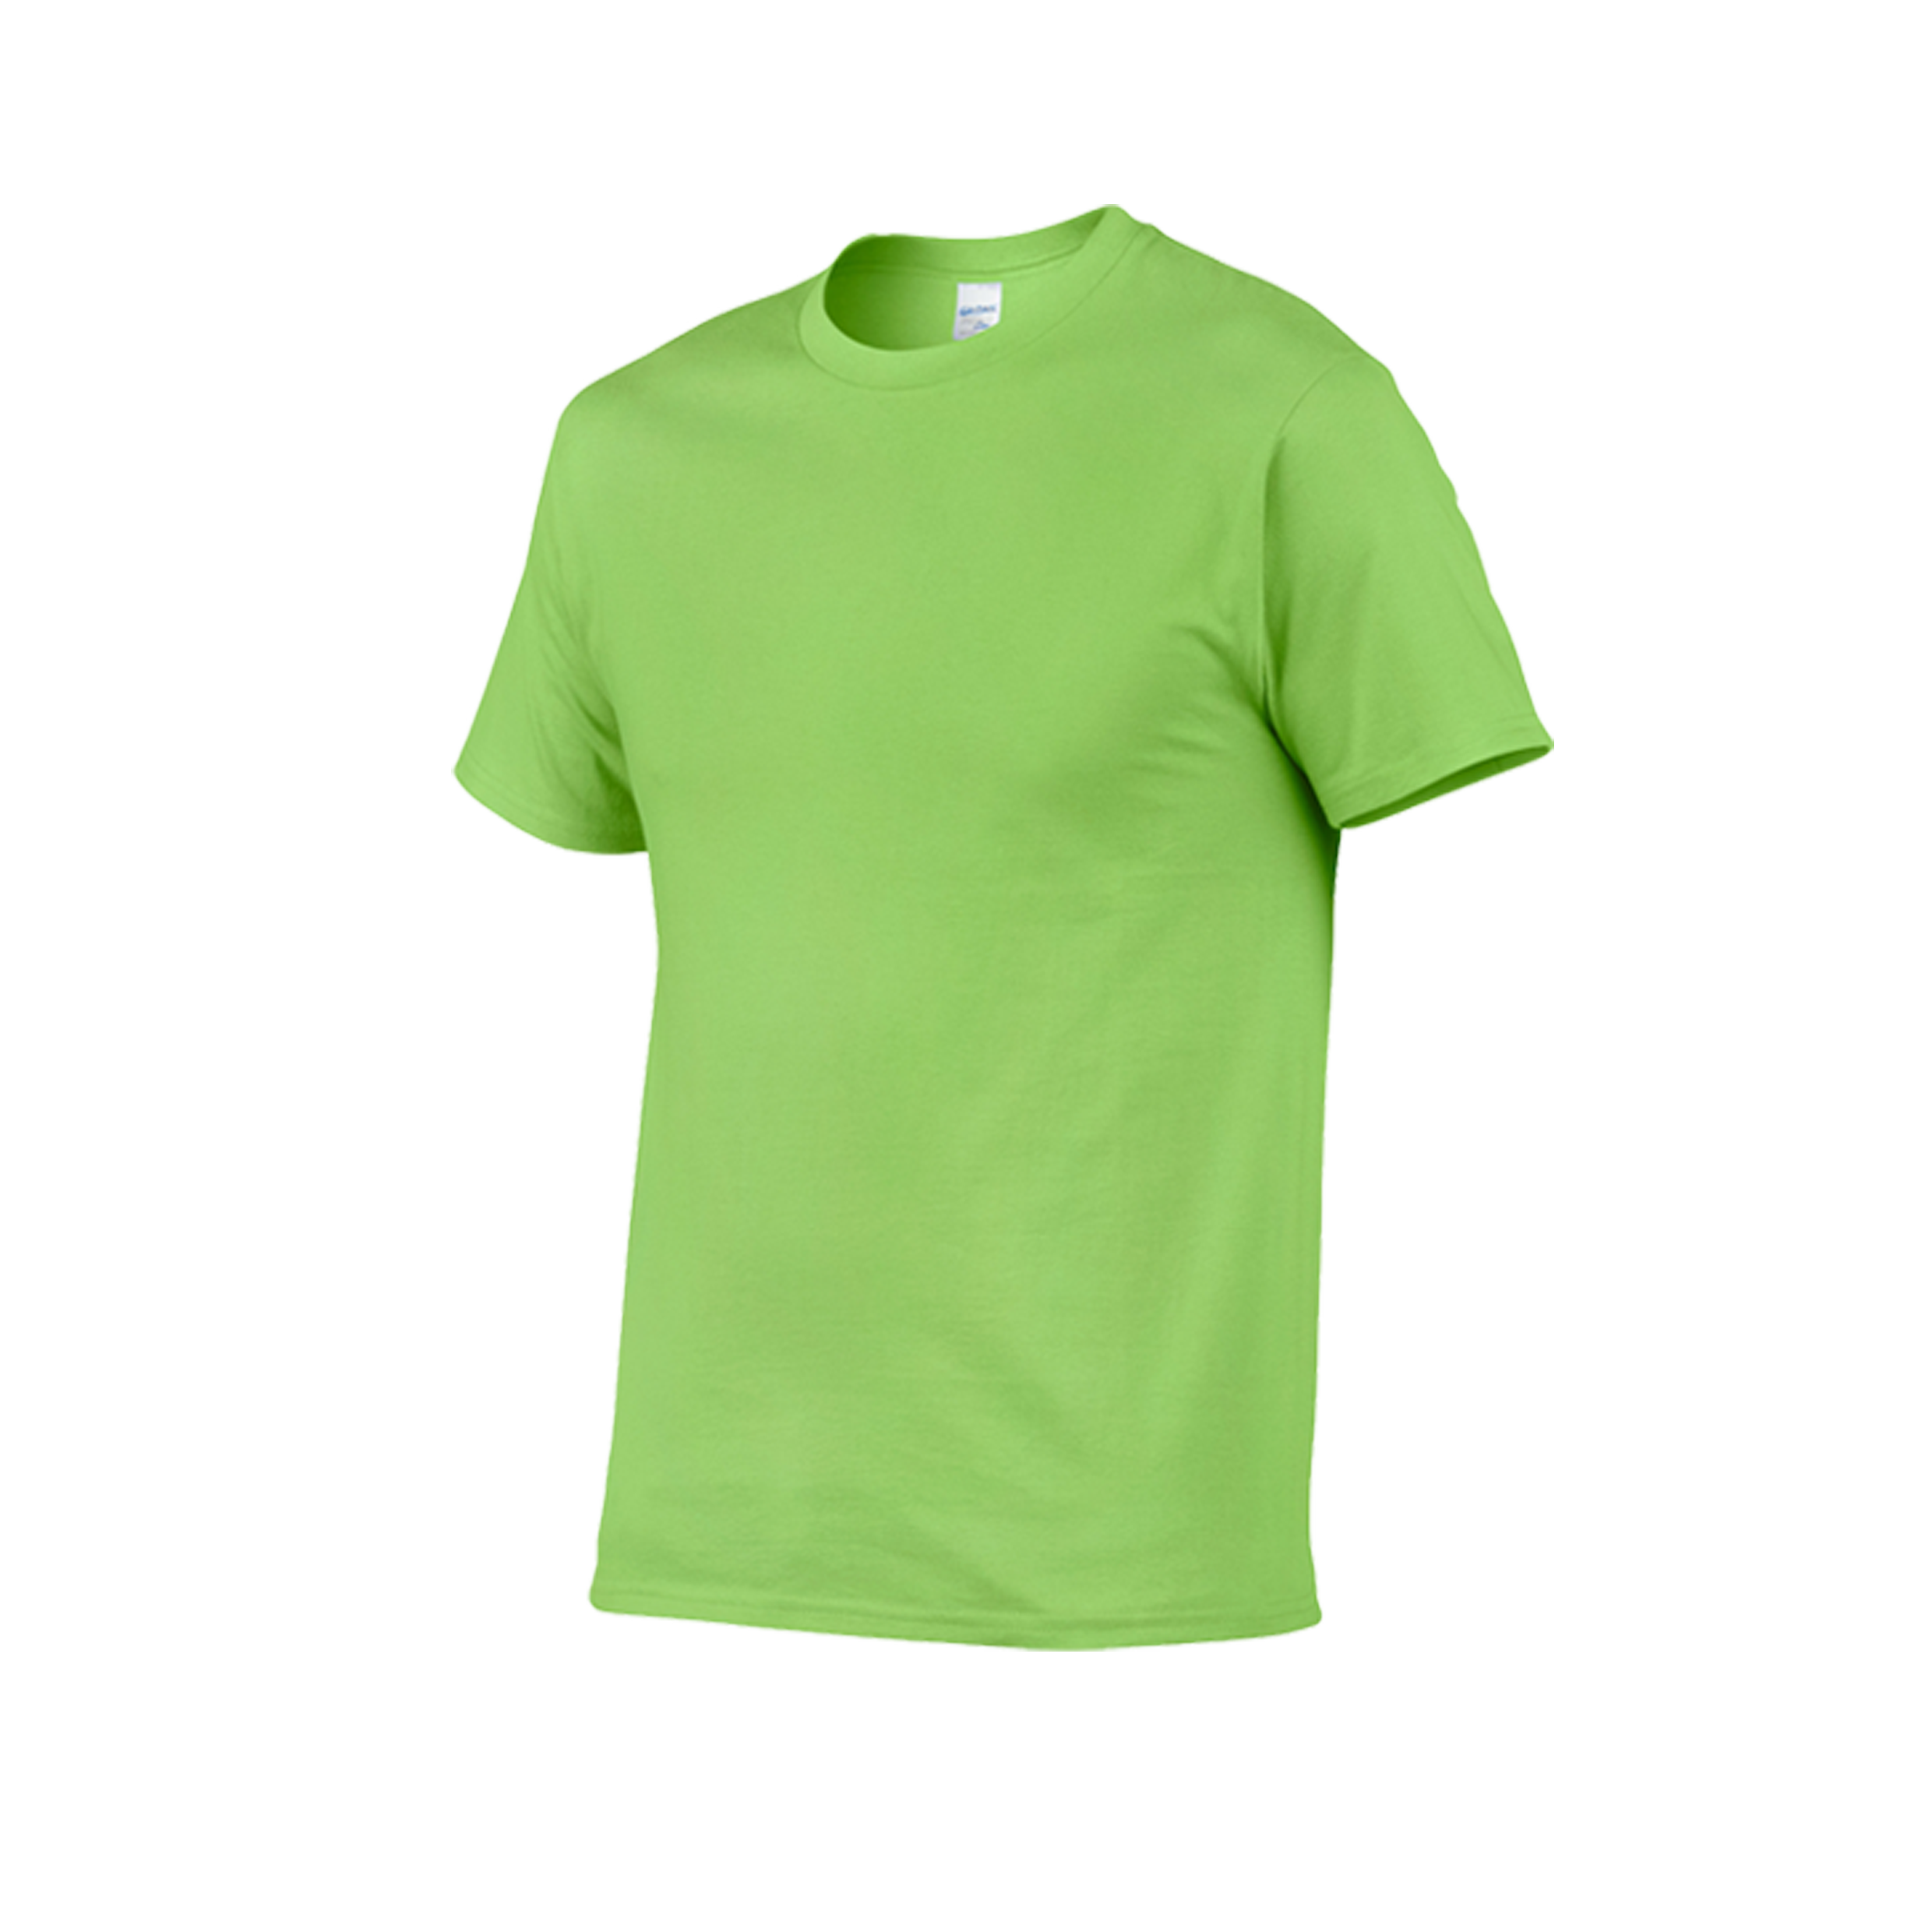 Gildan premium cotton adult t shirt 76000 32 colors t for Gildan t shirts online